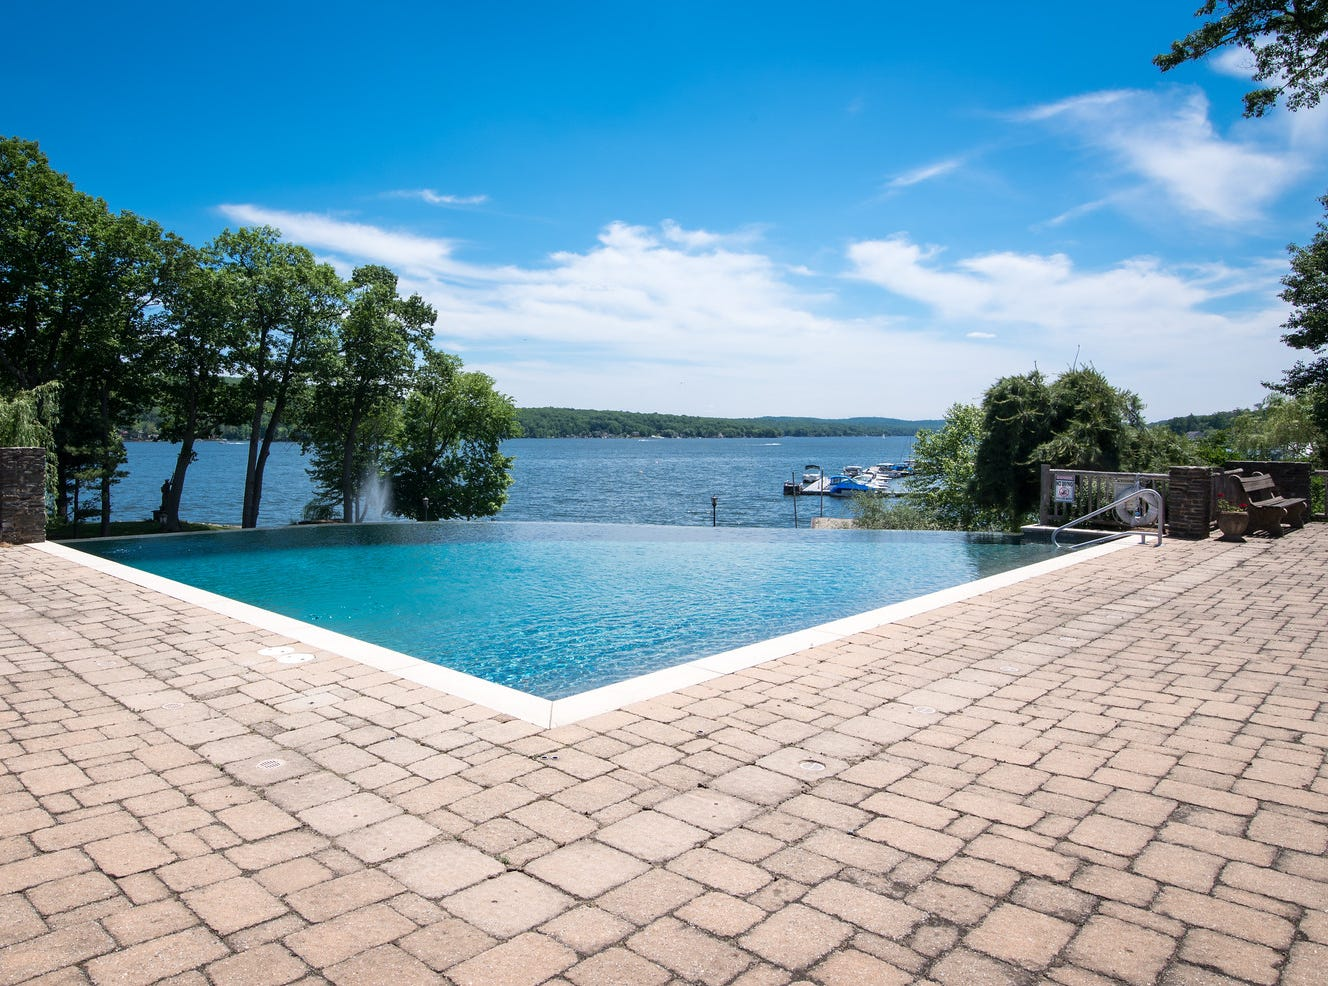 No $15 million estate is complete without an infinity pool, such as the one near the shore of Greenwood Lake in New York State at an estate listed for sale at $14.75 million.